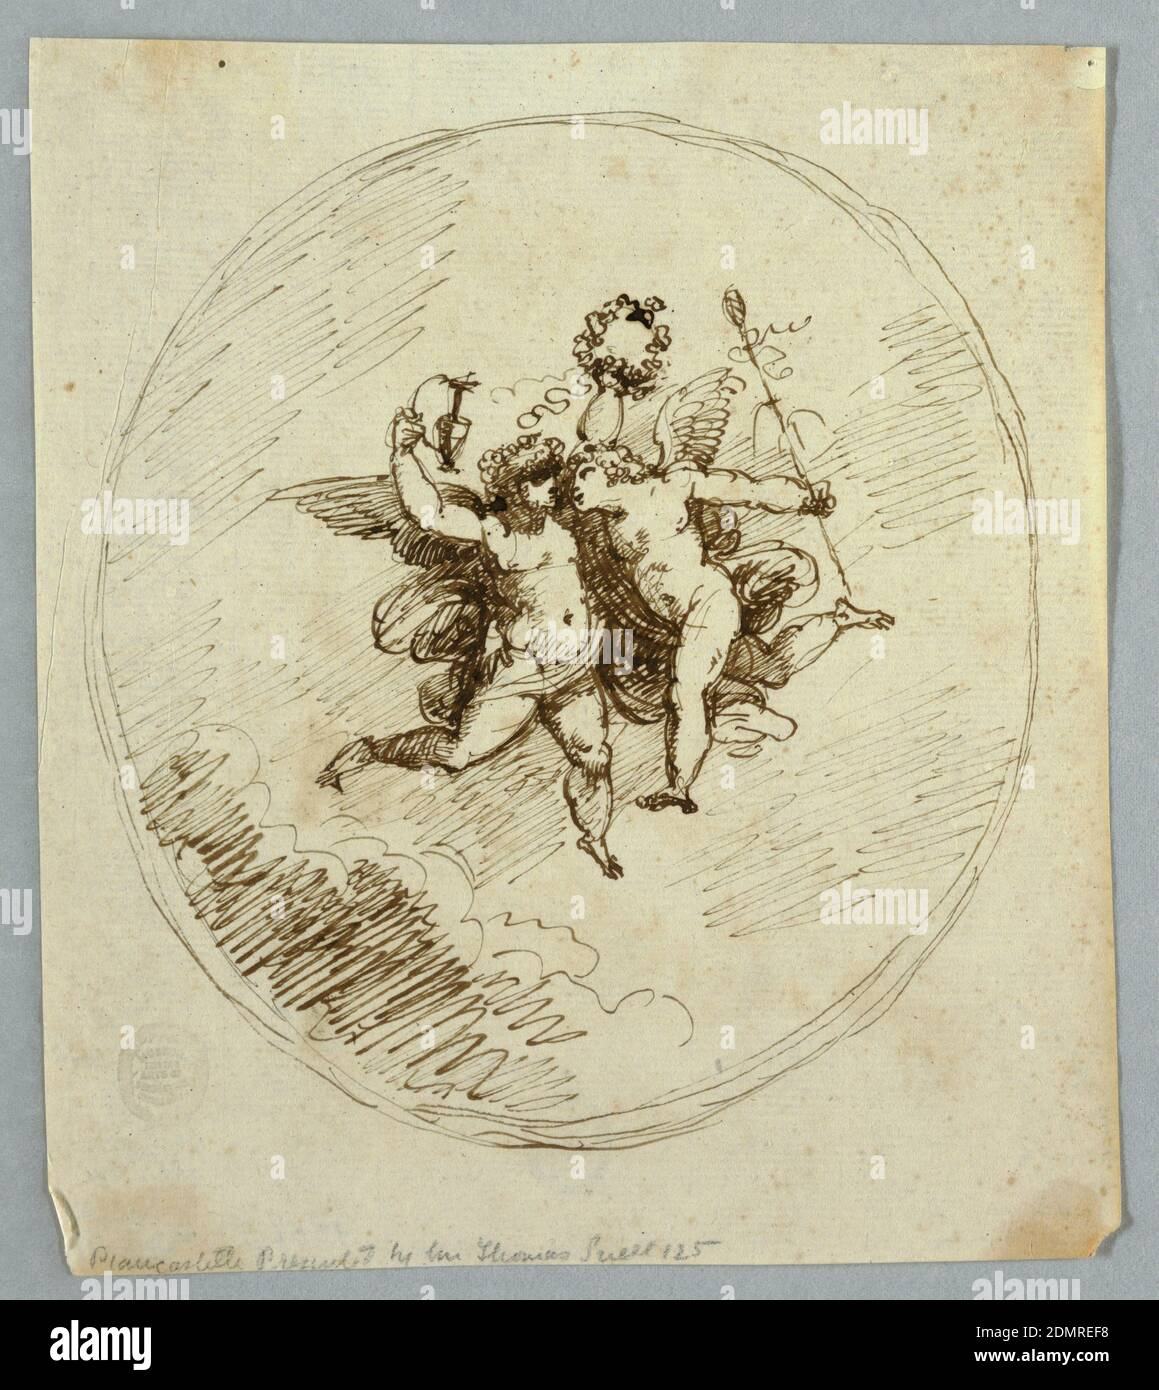 Two Flying Putti with Attributes of Dionysus, Felice Giani, Italian, 1758–1823, Felice Giani, Italian, 1758–1823, Pen and ink on paper, Vertical rectangle showing two loosely drawn putti in an oval frame. The left putto raises a pitcher and wreath, the right has a thyrsus., Italy, 1800–1820, figures, Drawing Stock Photo